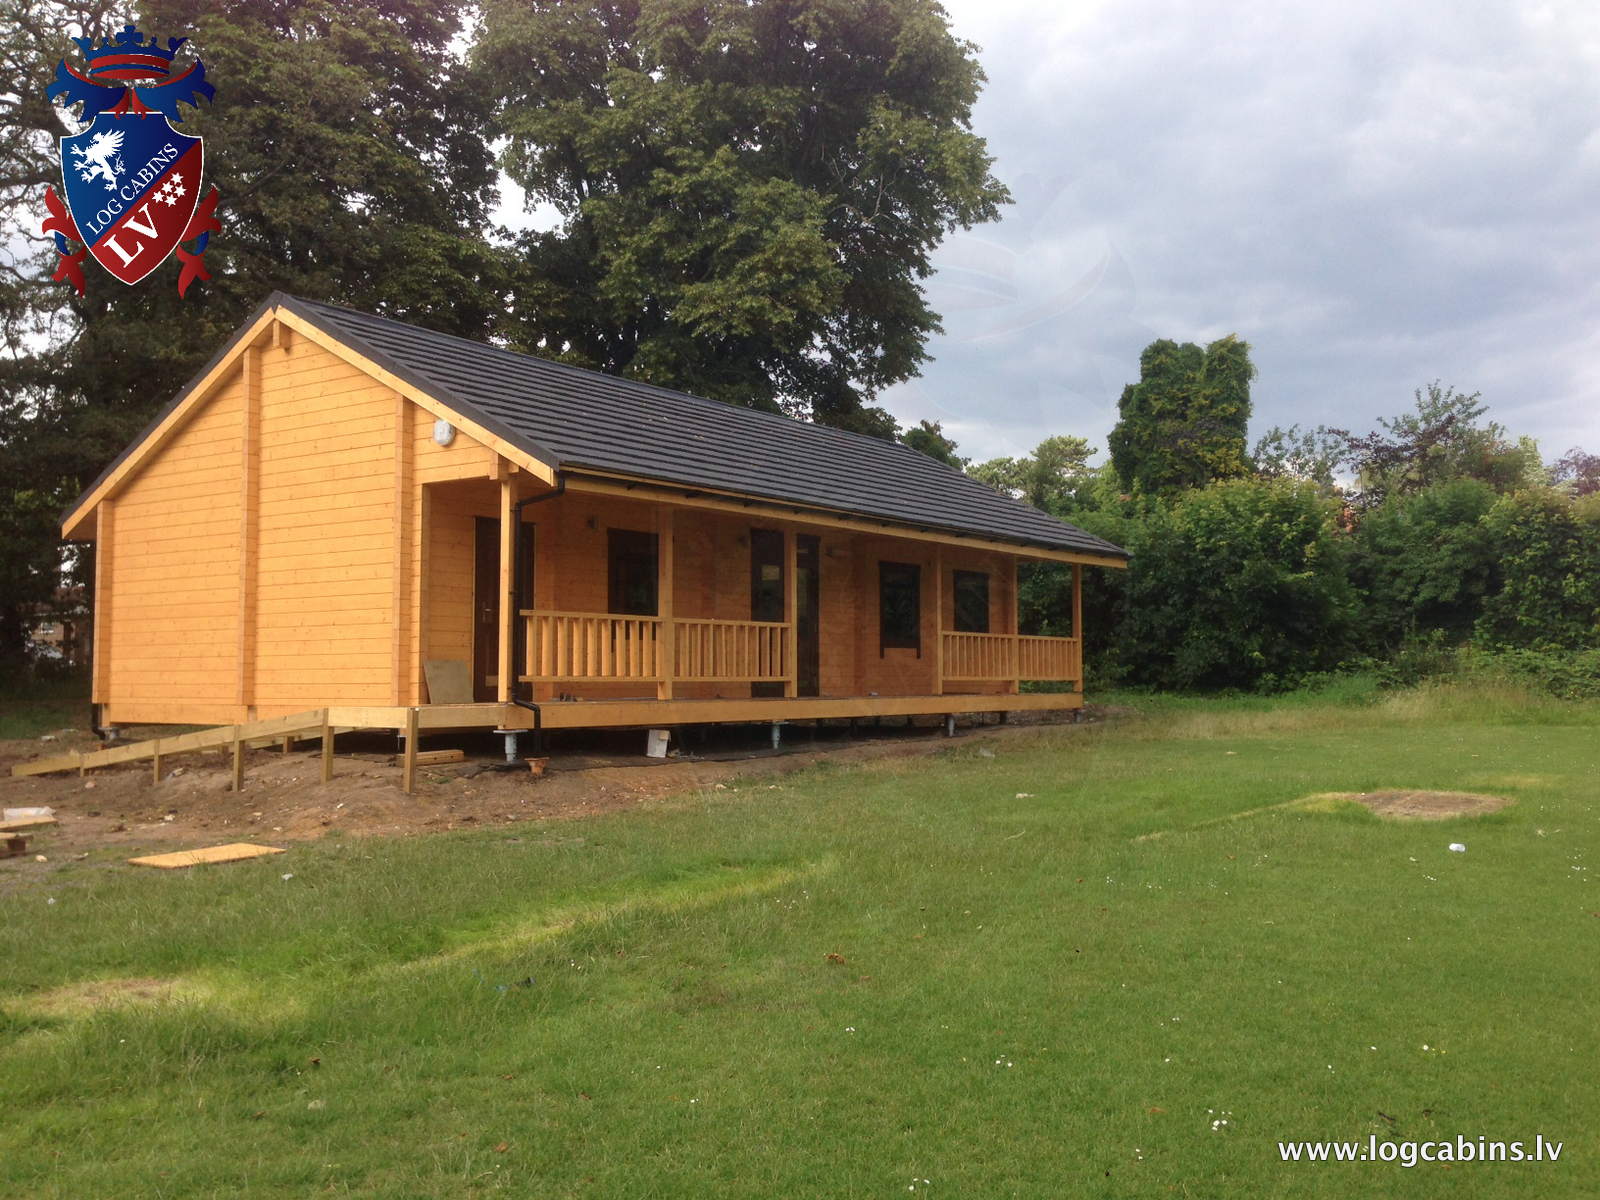 quality log cabins from log cabins.lv